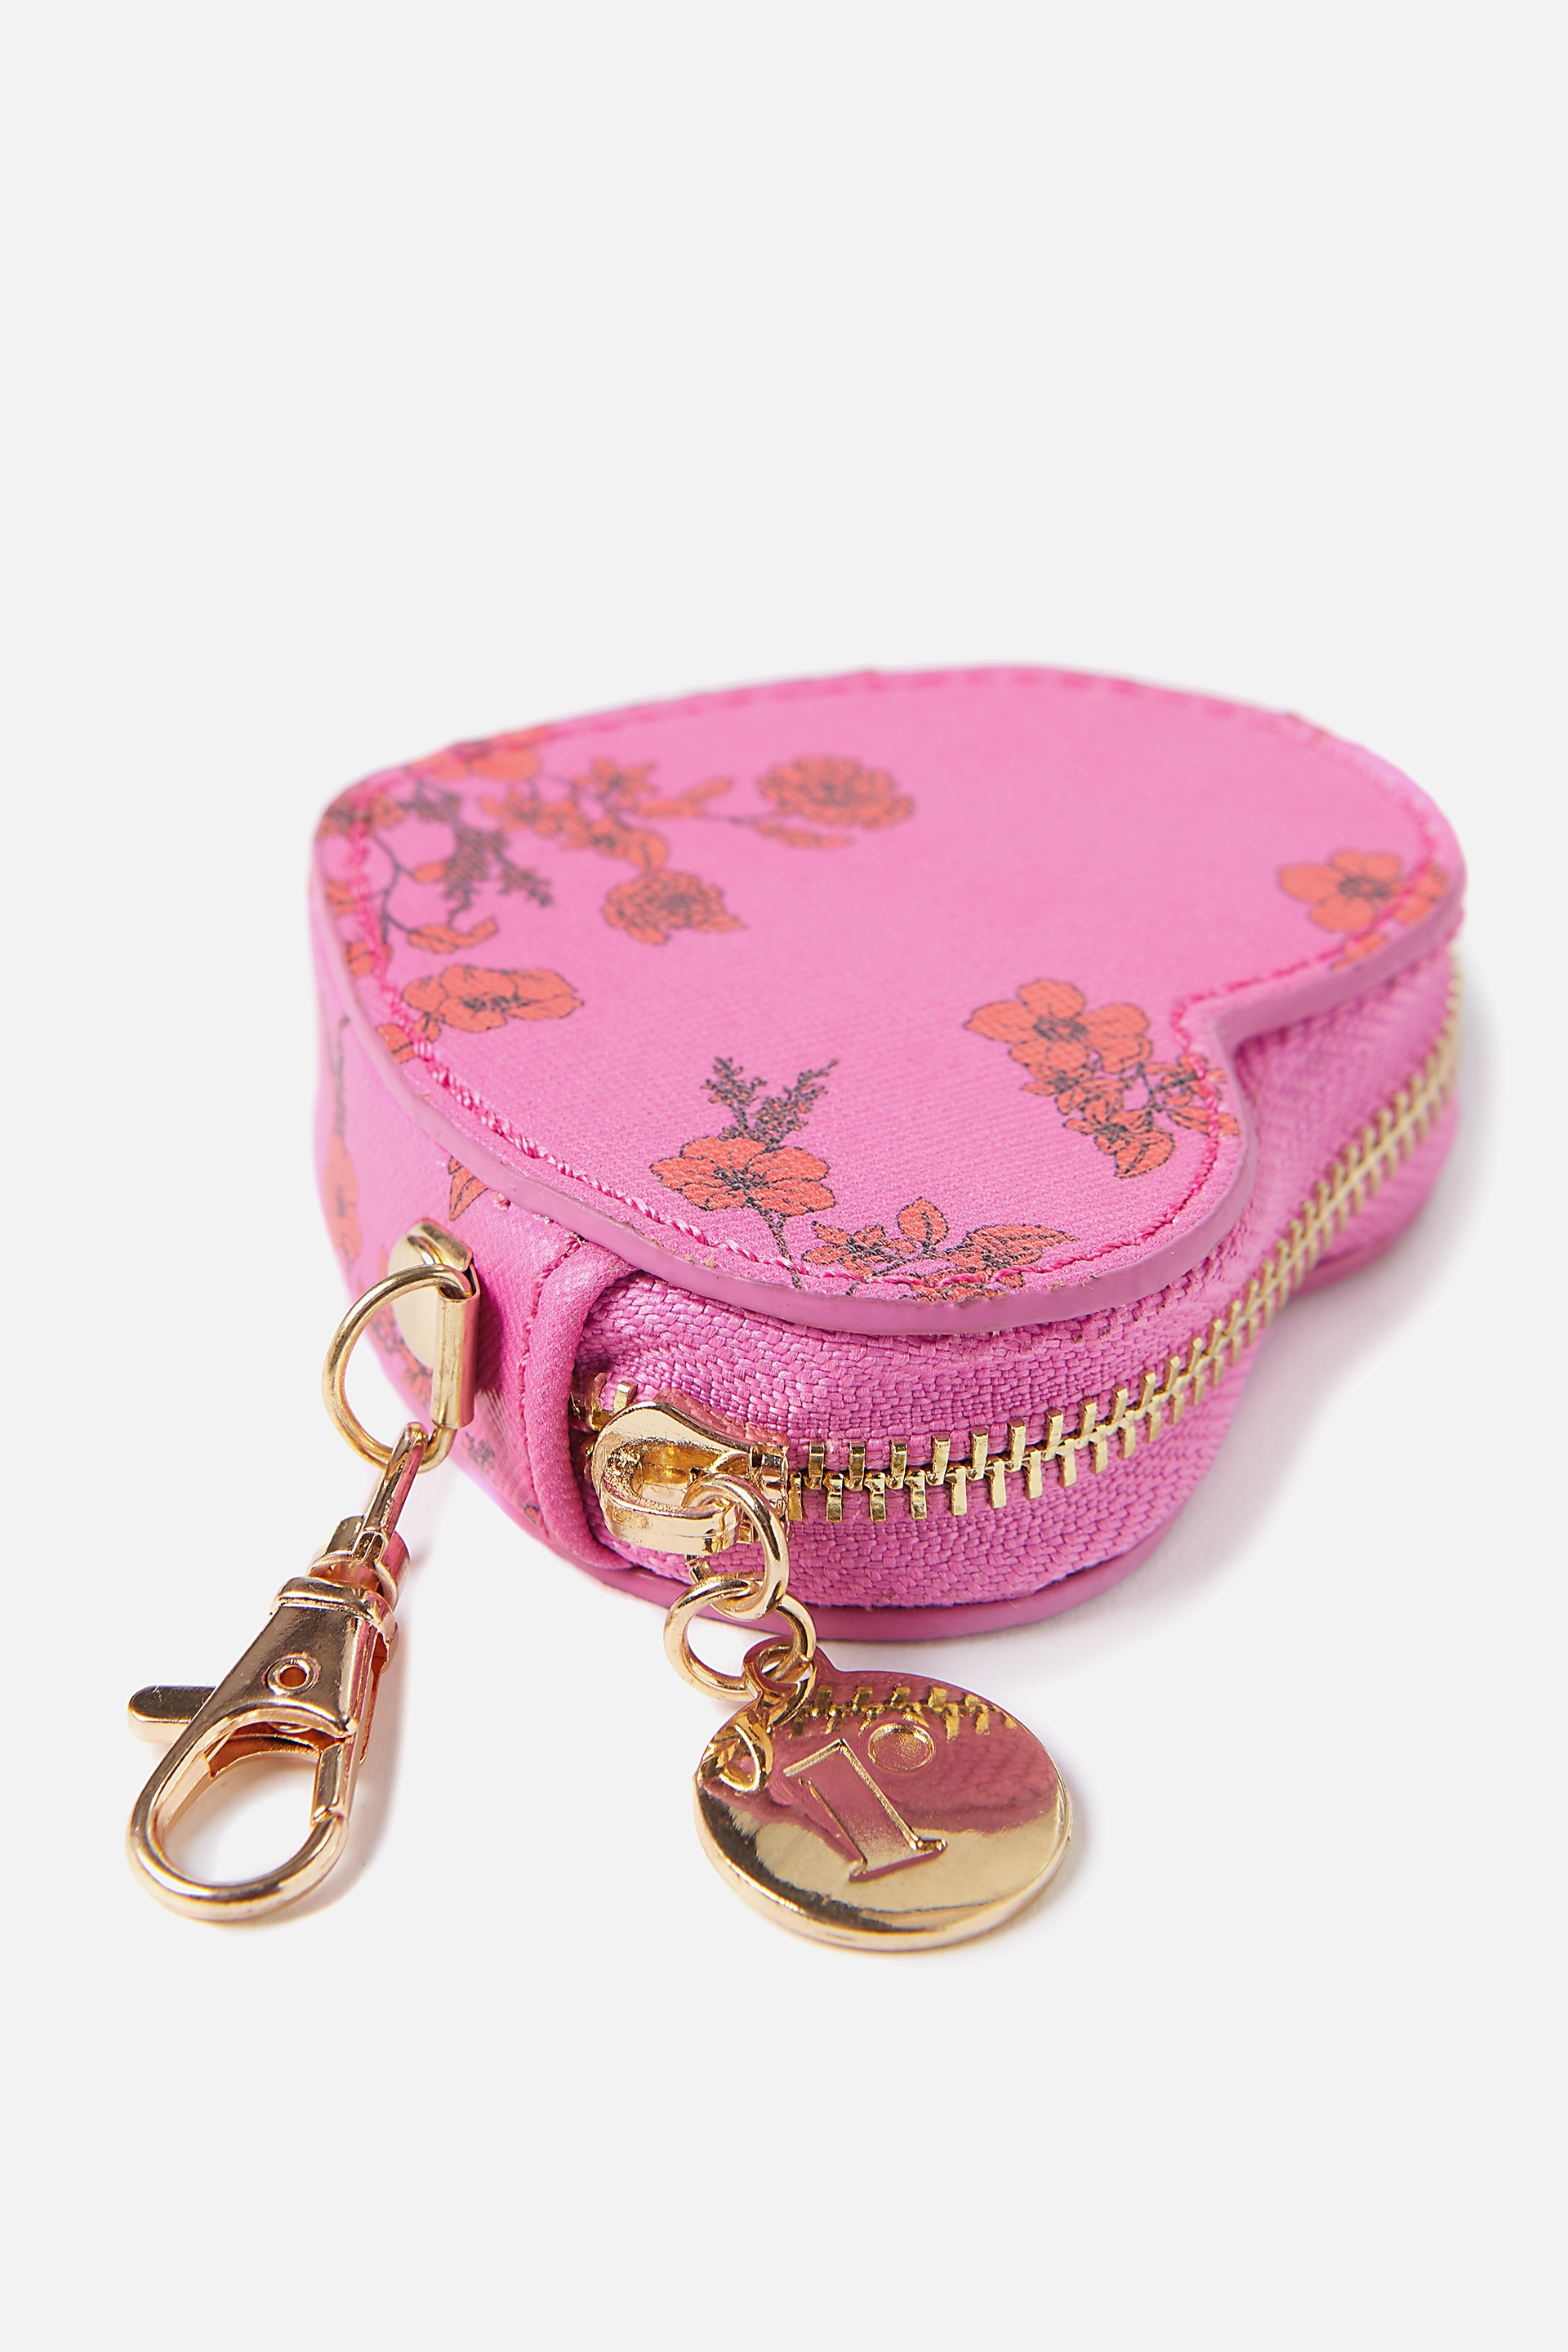 Rubi - Houston Heart Purse - Laura jane pink floral 9352855369773